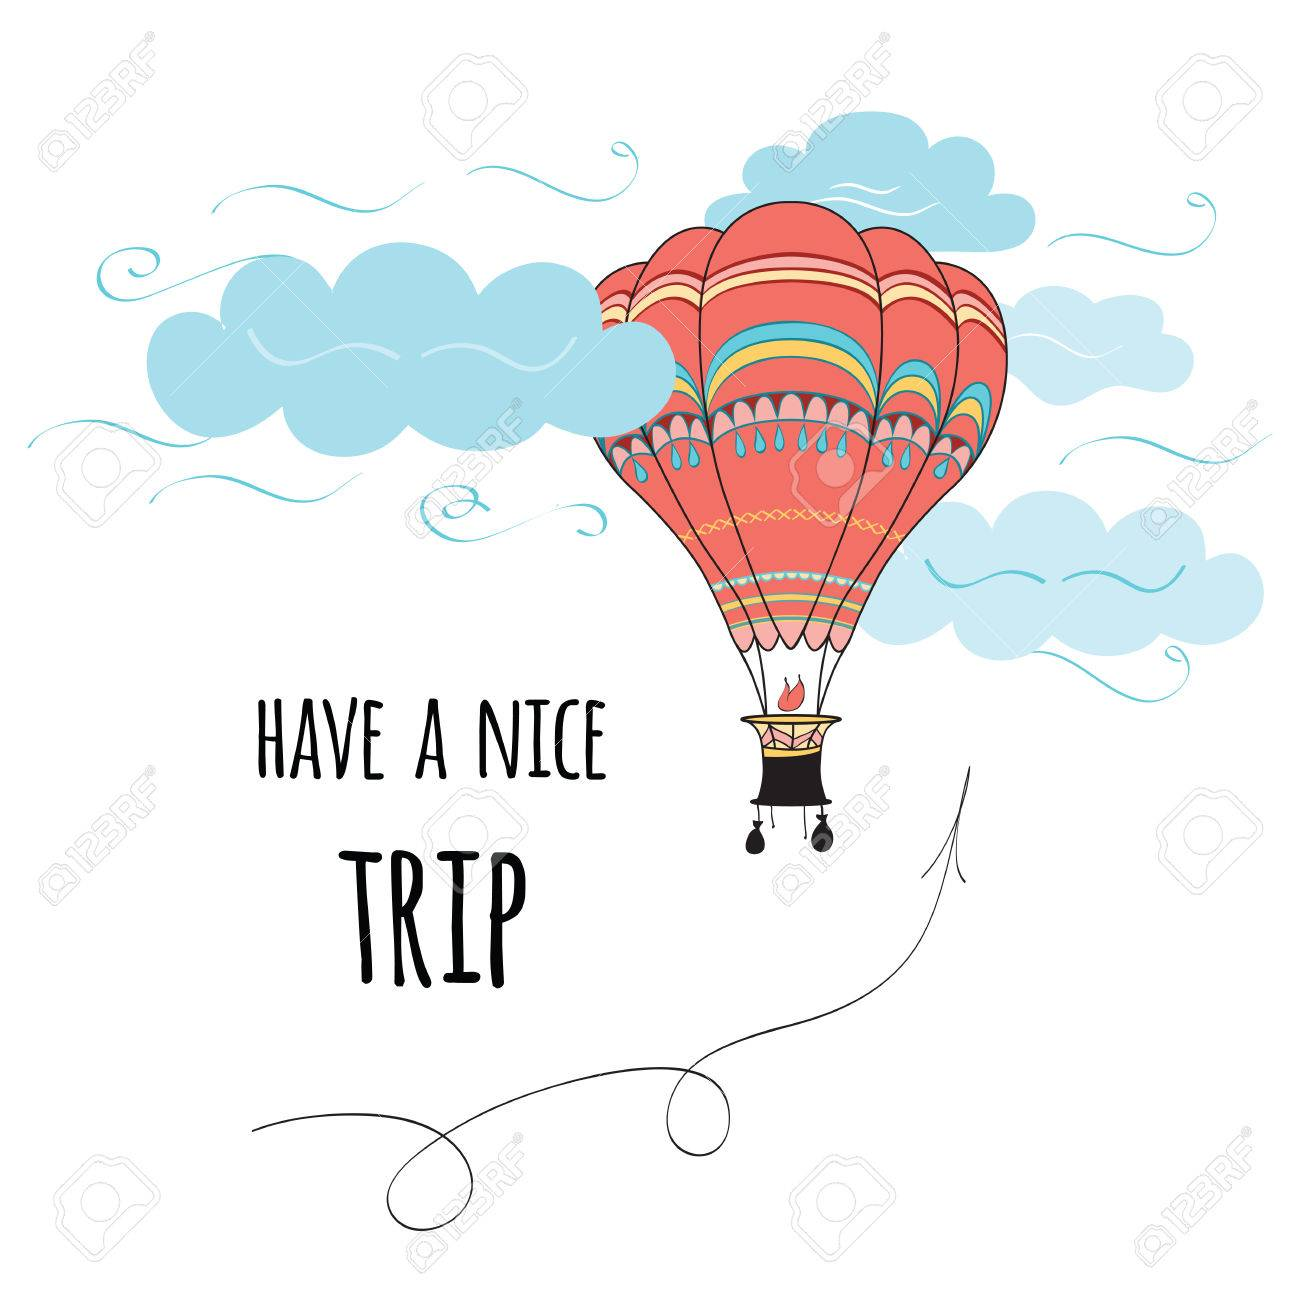 Image result for have a nice trip